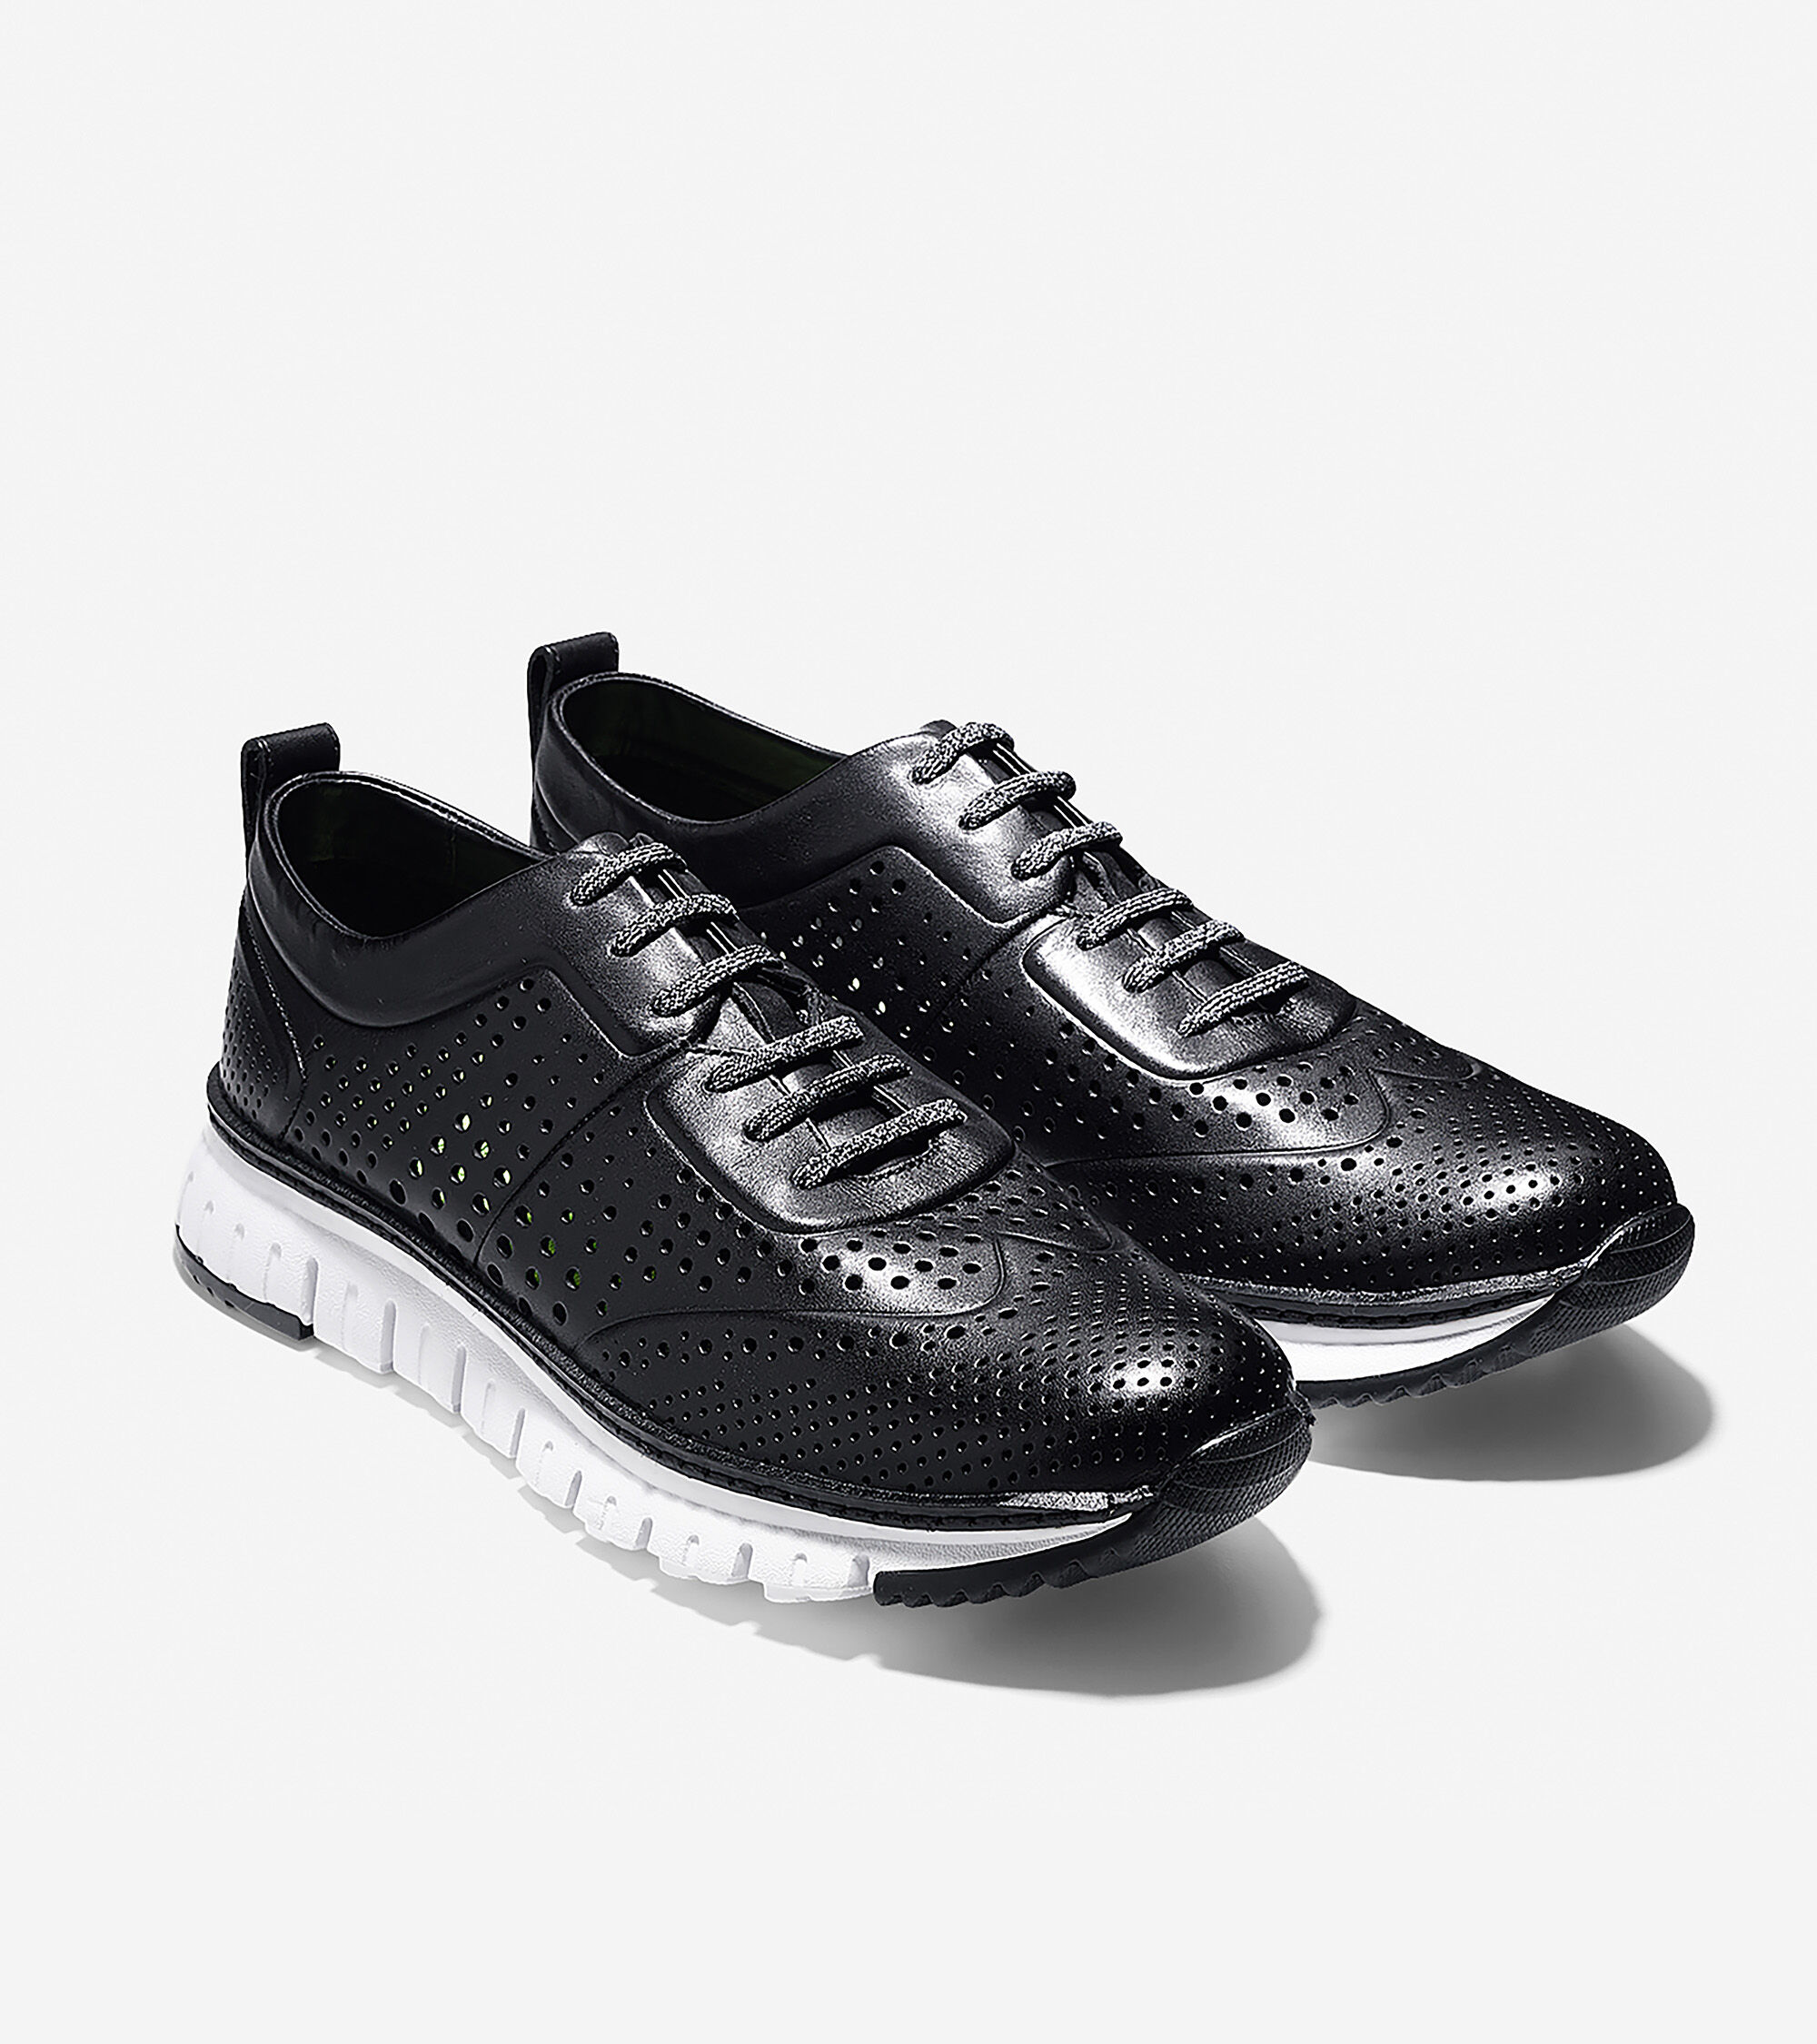 ... Men's ZERØGRAND Perforated Sneaker; Men's ZERØGRAND Perforated Sneaker.  #colehaan